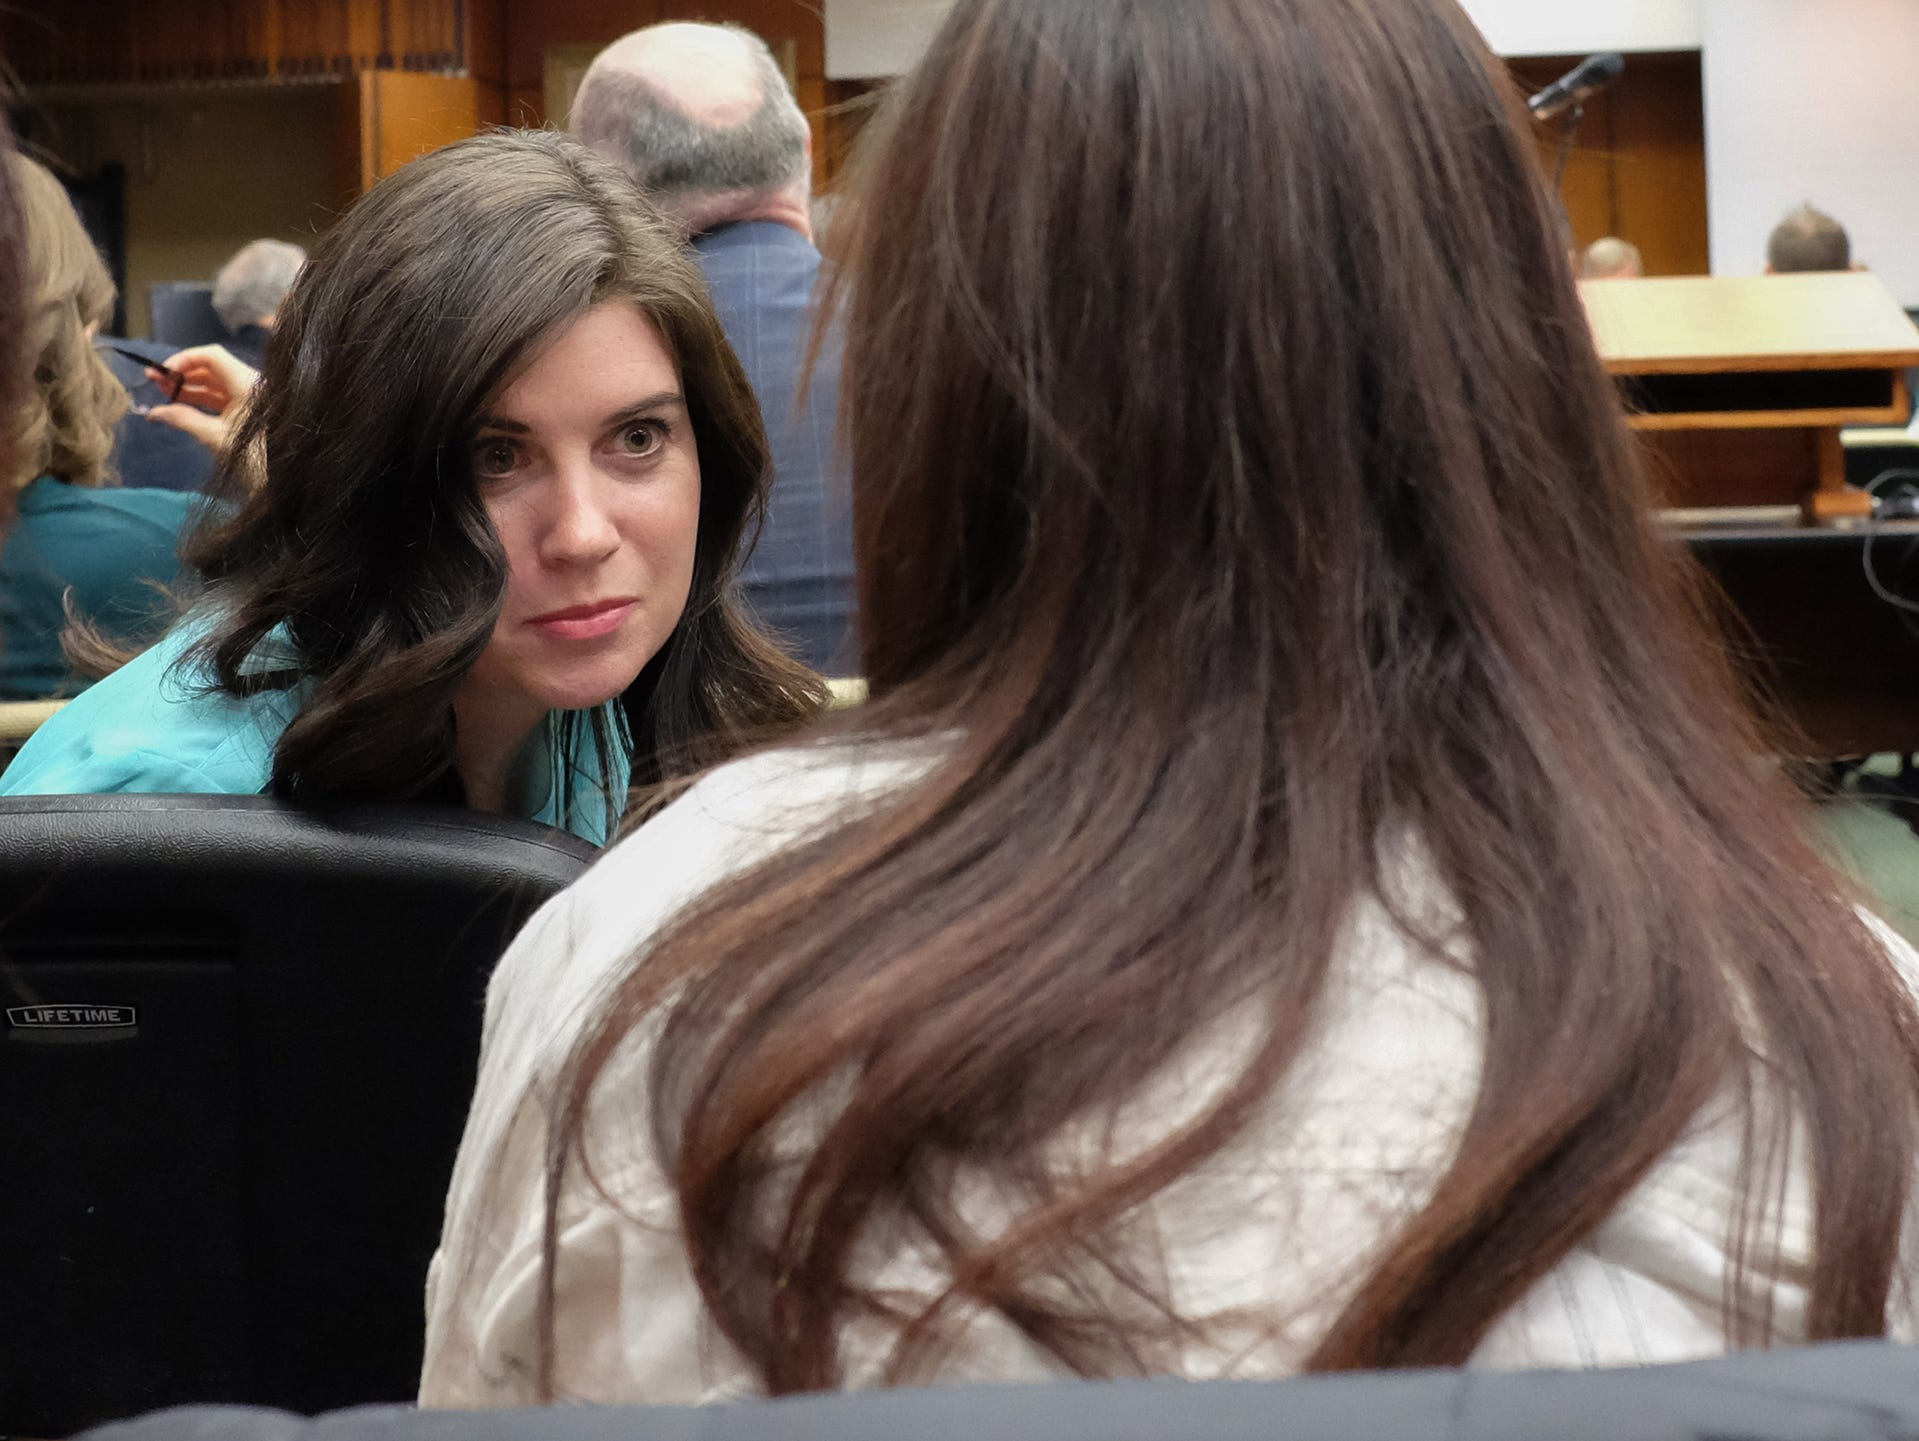 Larissa Boyce, Nassar survivor, talks with another survivor Kaylee Lorincz at the MSU Board of Trustees meeting Friday, Dec. 14, 2018.